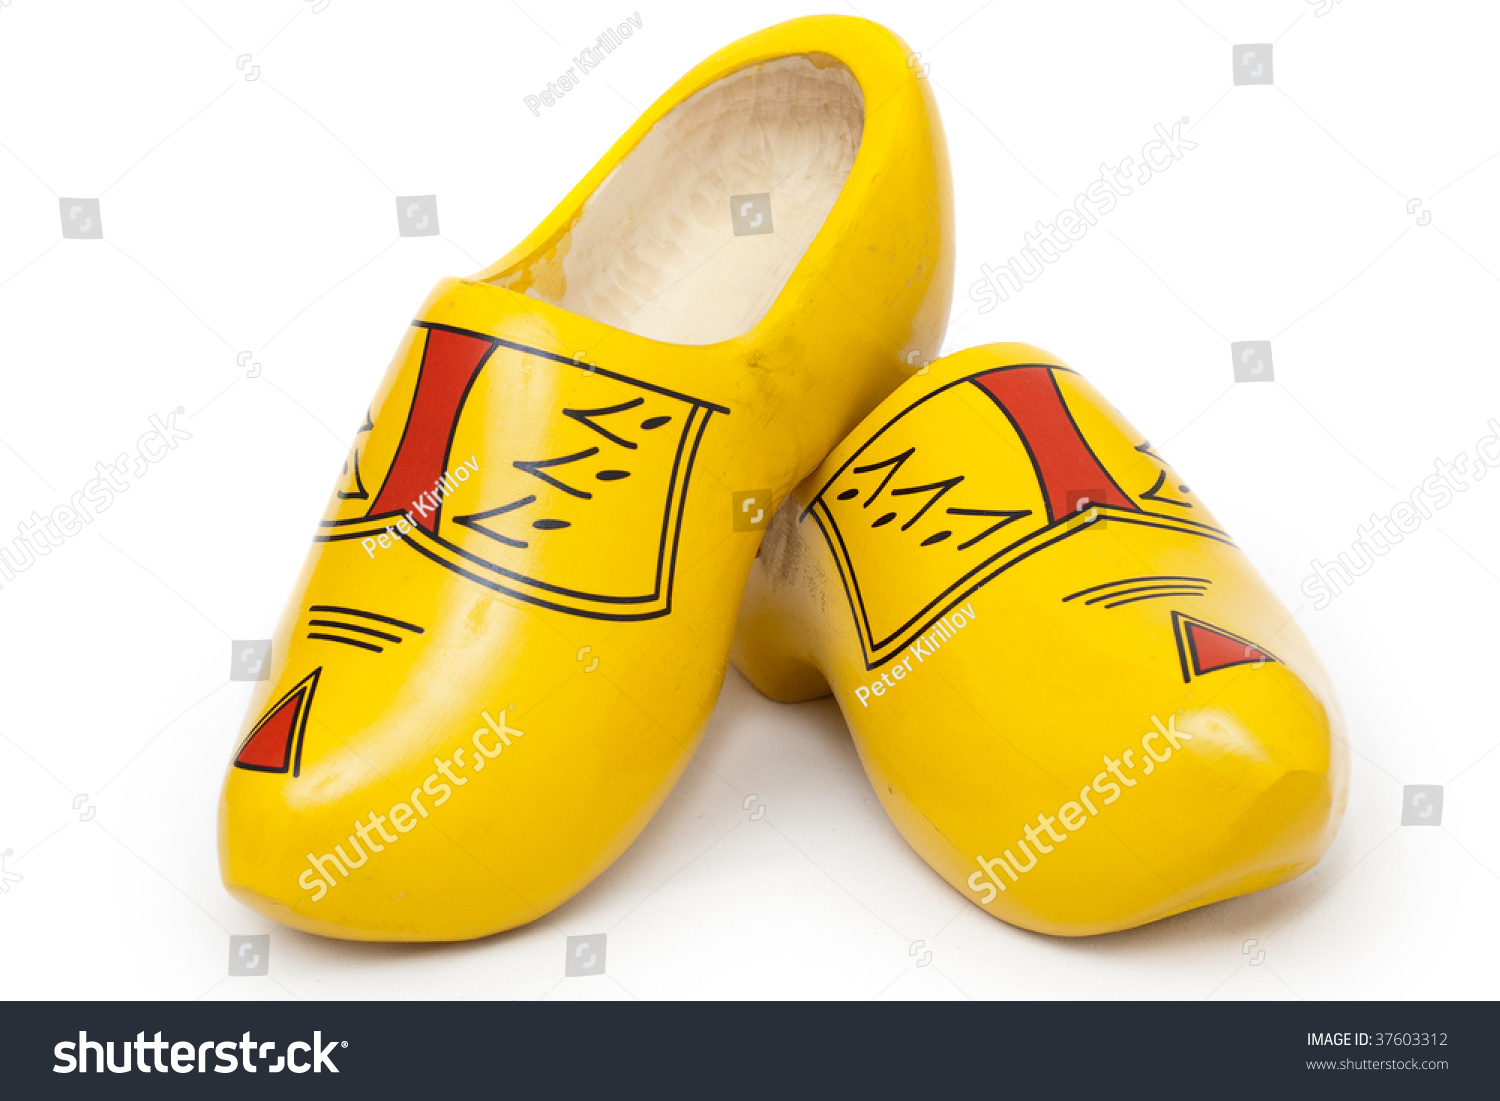 pair wooden shoes klompen traditional dutch stock photo 37603312